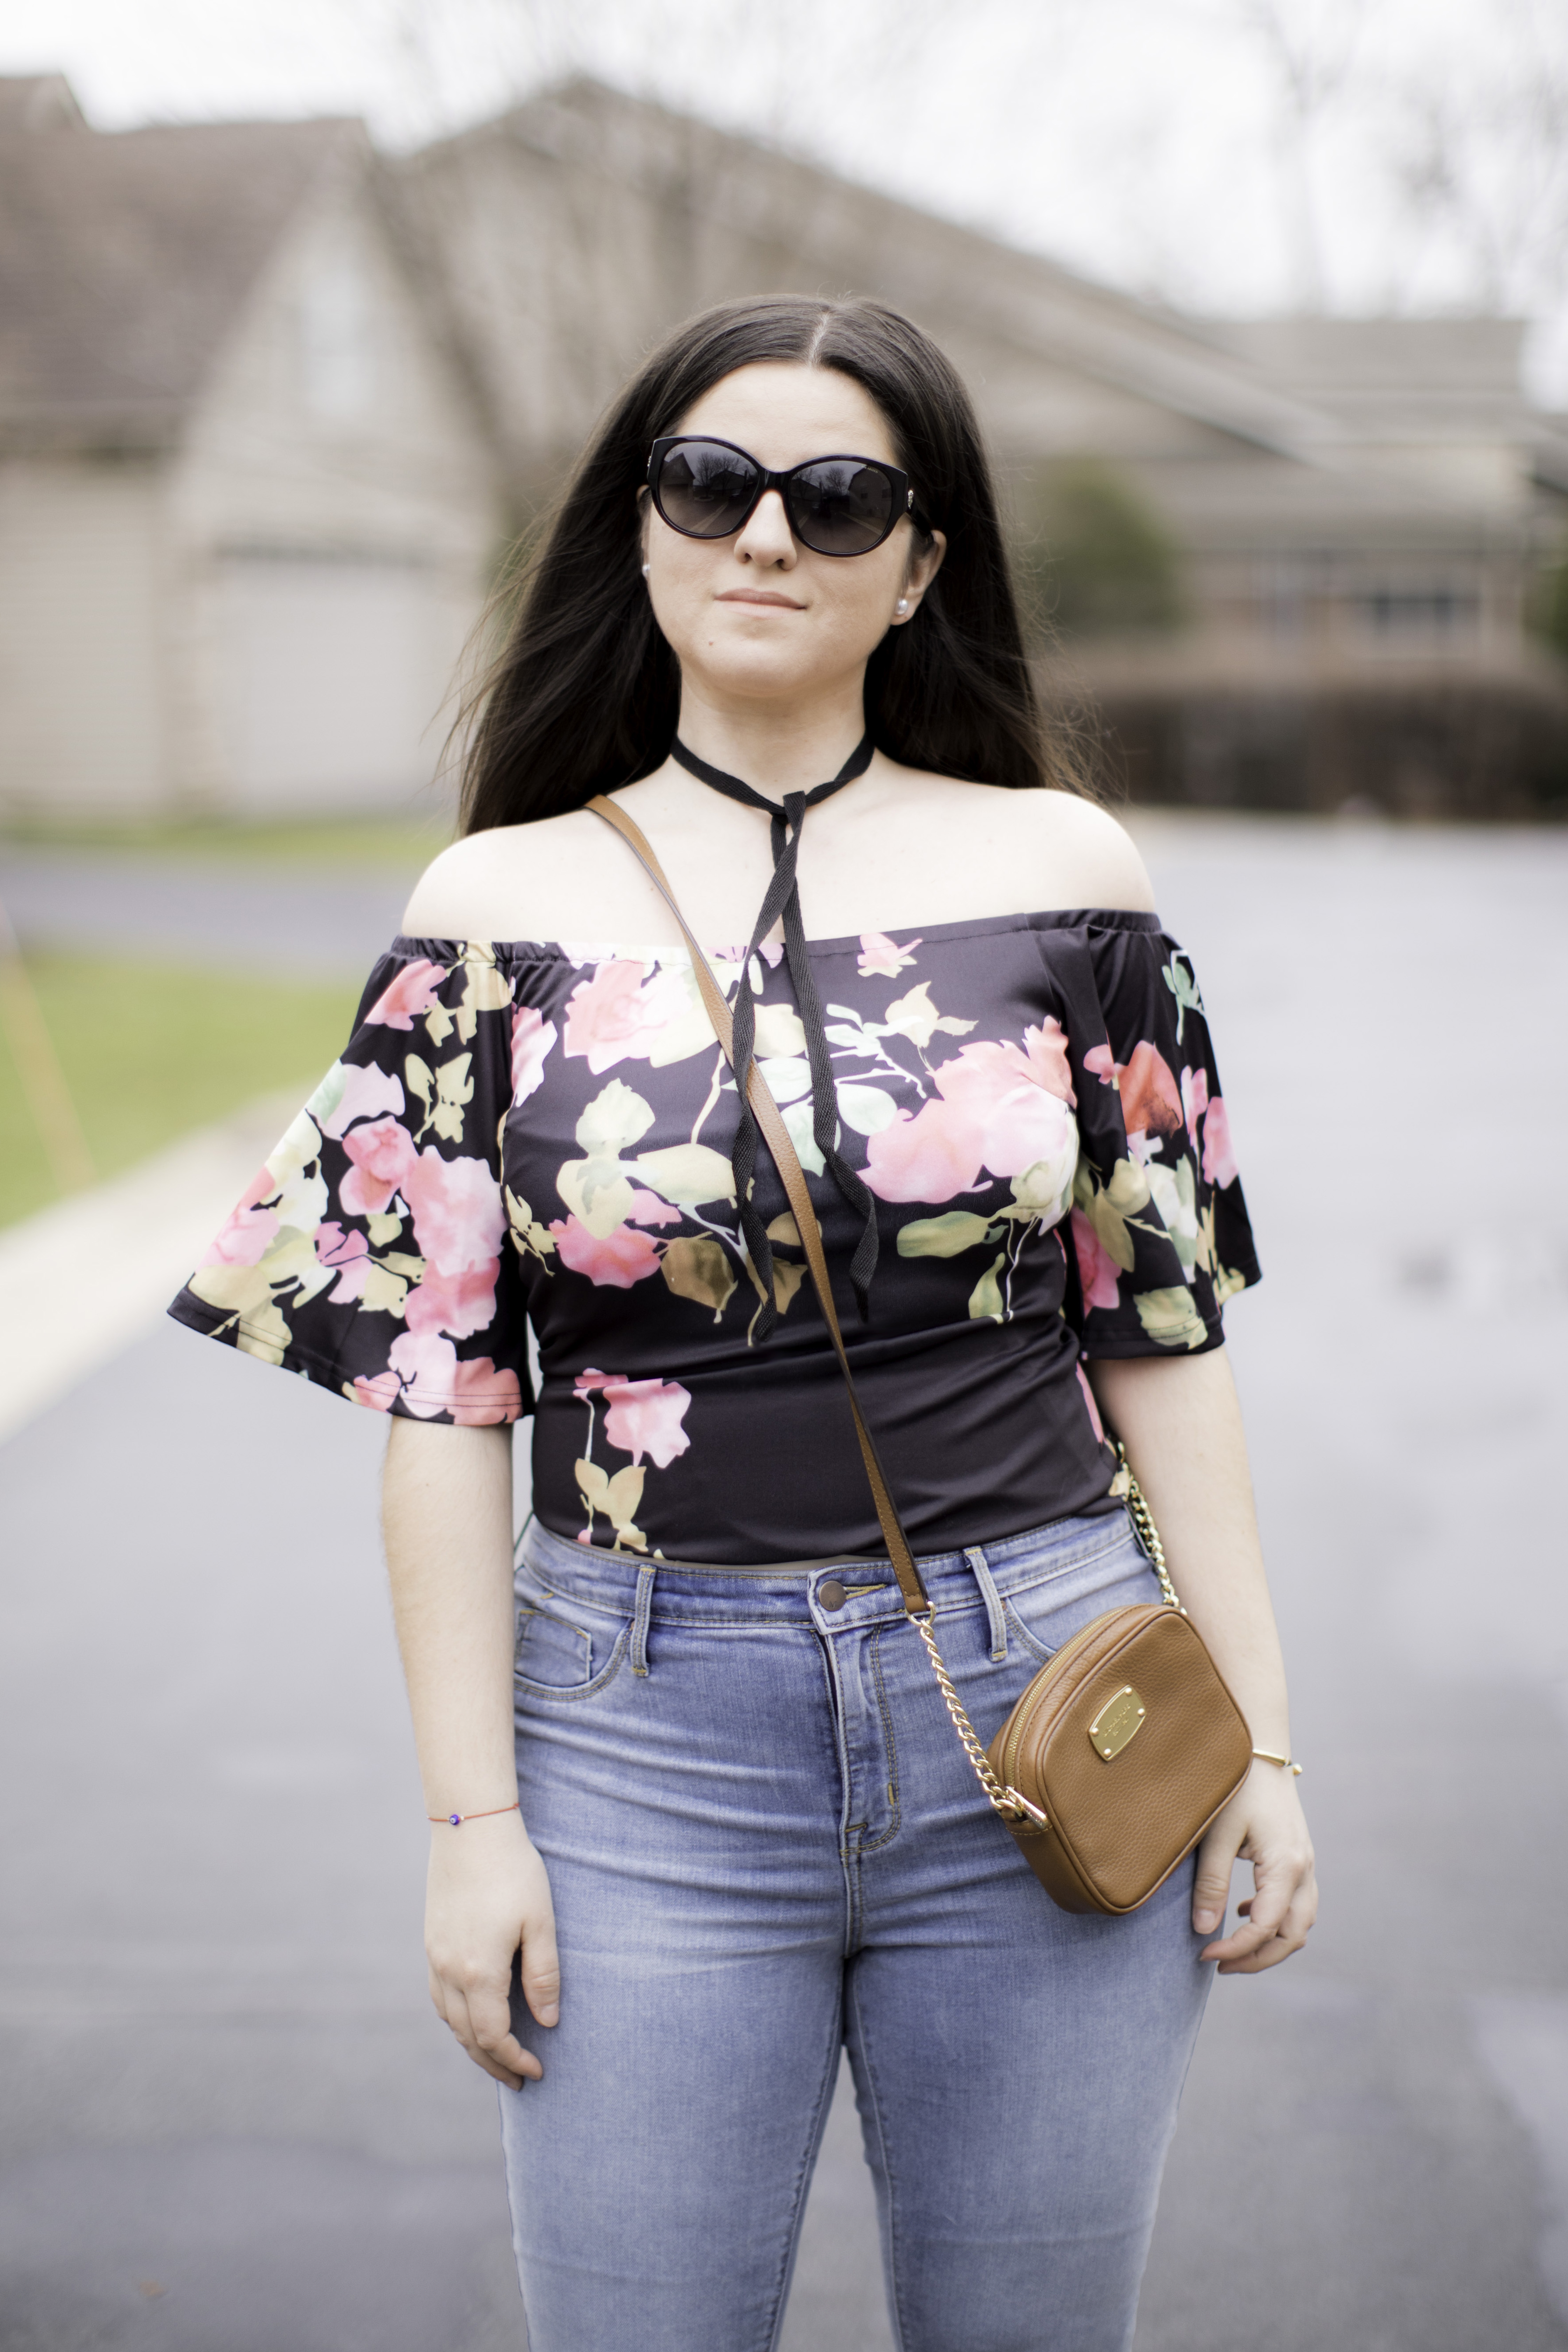 How to style an off the shoulder top for a date night, floral top, skinny high waist jeans, bailylamb, chicagoblogger, rockfordblogger